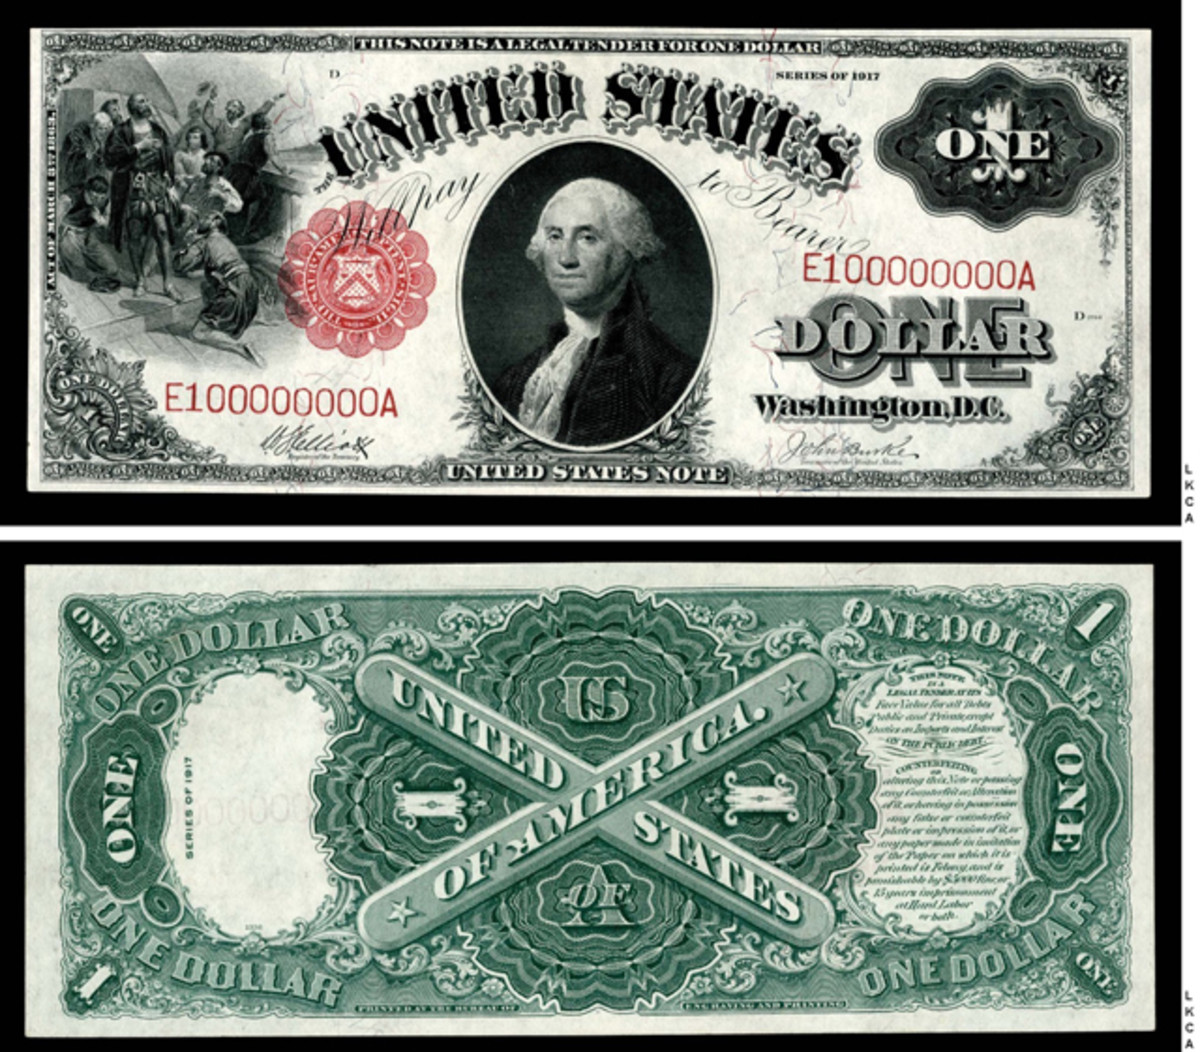 Lot 1917 Legal Tender Note with a #100000000 serial number Fr. 37, graded PCGS About-New 58